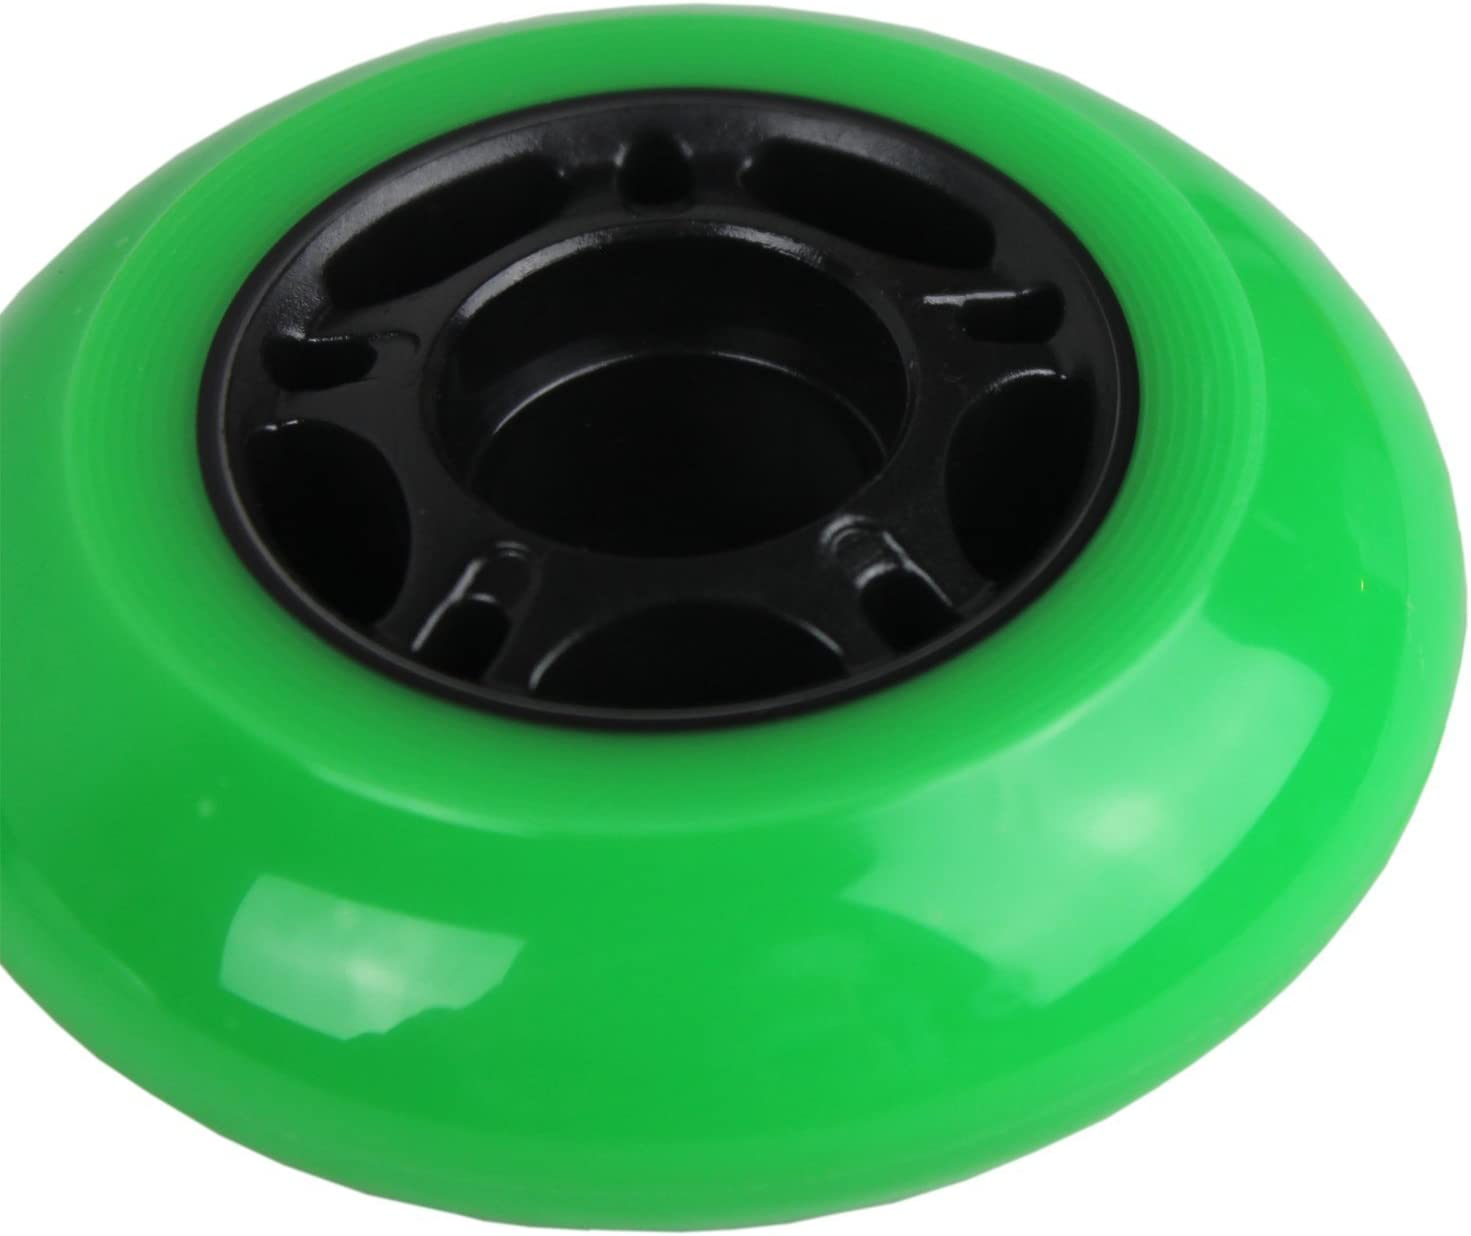 Players Choice Outdoor Inline Skate Wheels 76mm//80mm Grn Hilo Roller Blade Hockey ABEC 9 Bearings